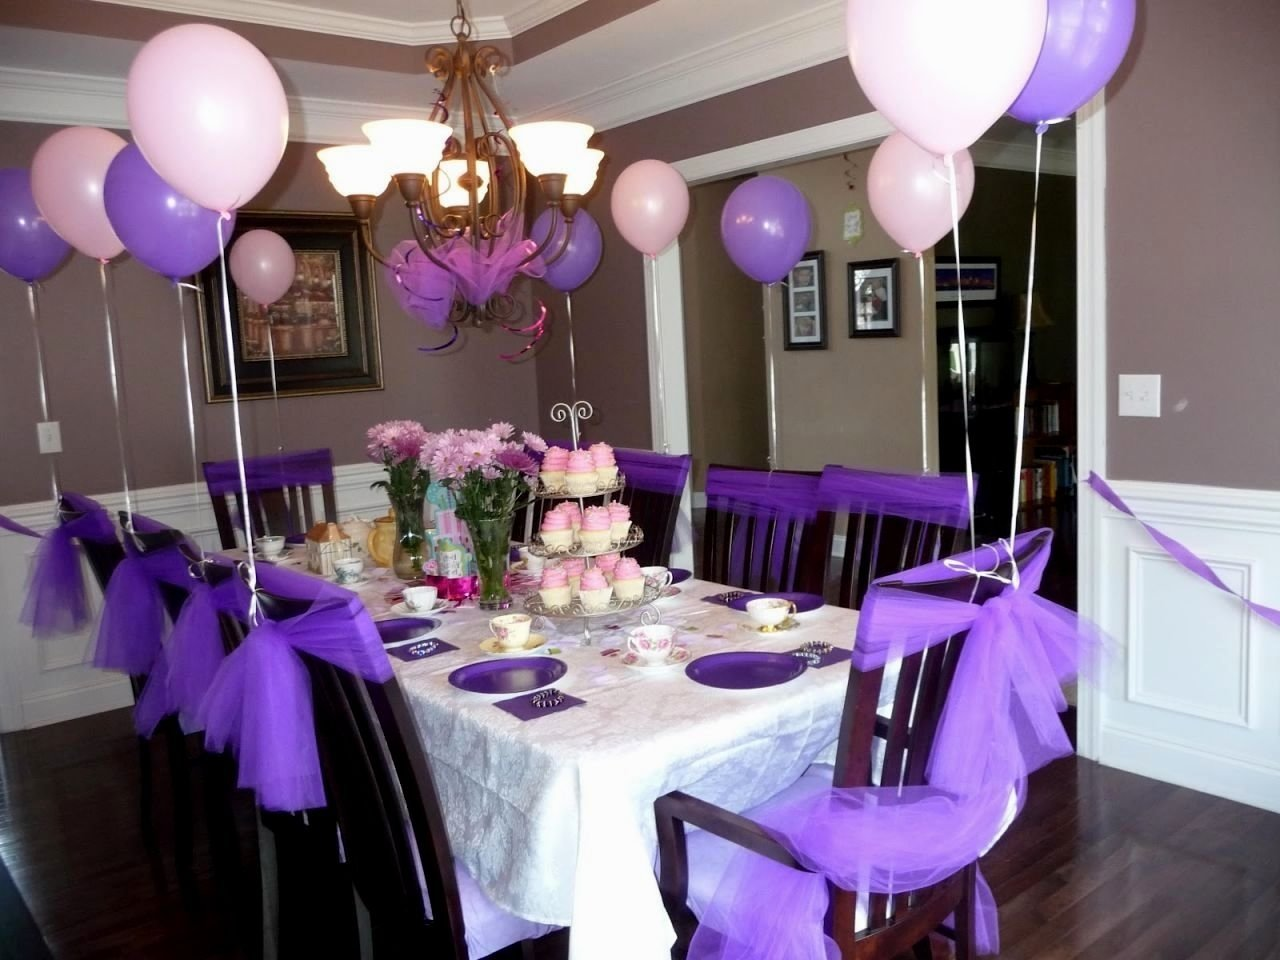 10 Lovable Cool Party Ideas For Adults party ideas adults theme food college coriver homes 86881 2